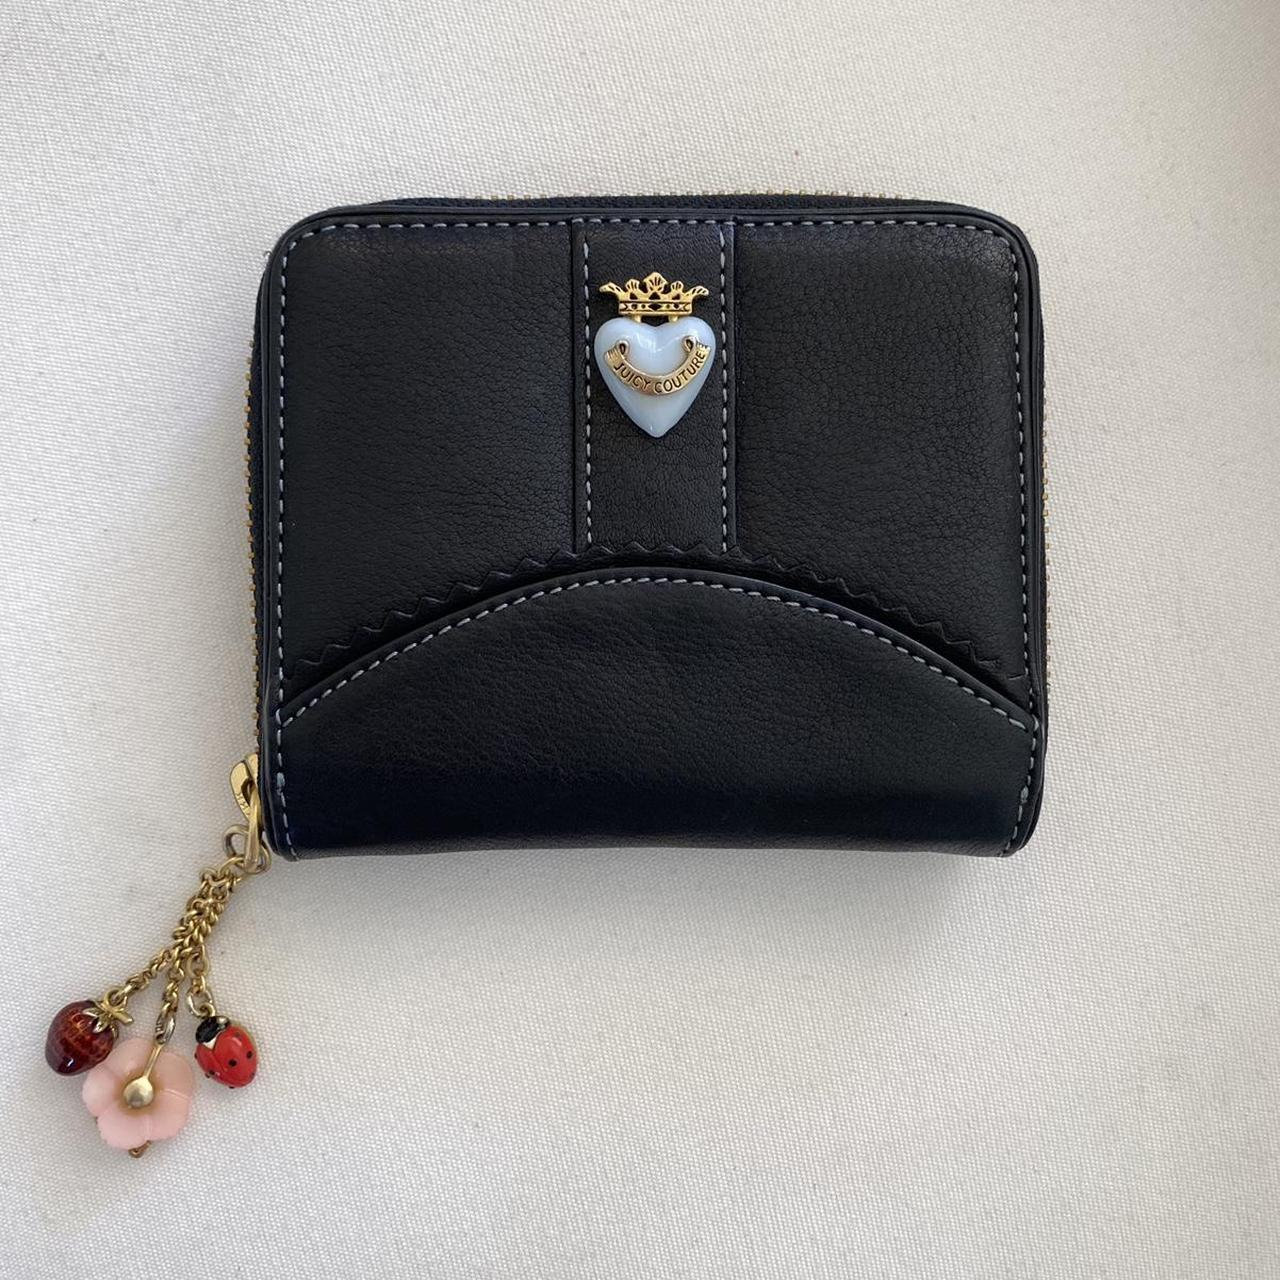 Product Image 1 - Absolutely gorgeous, deadstock Juicy Couture